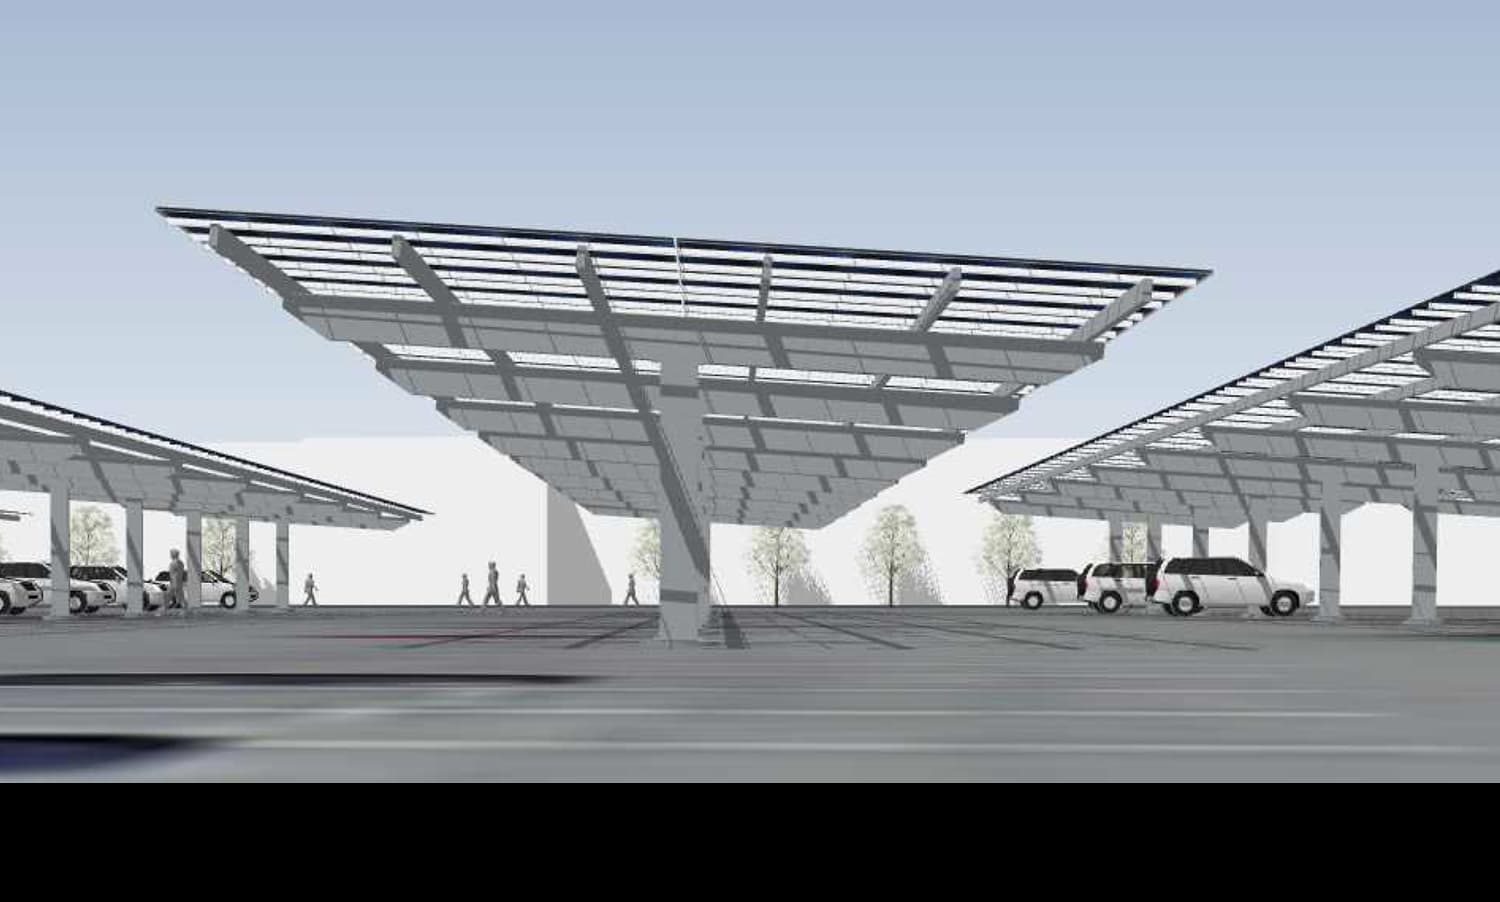 Ground Level - Keesler Air force base solar carport